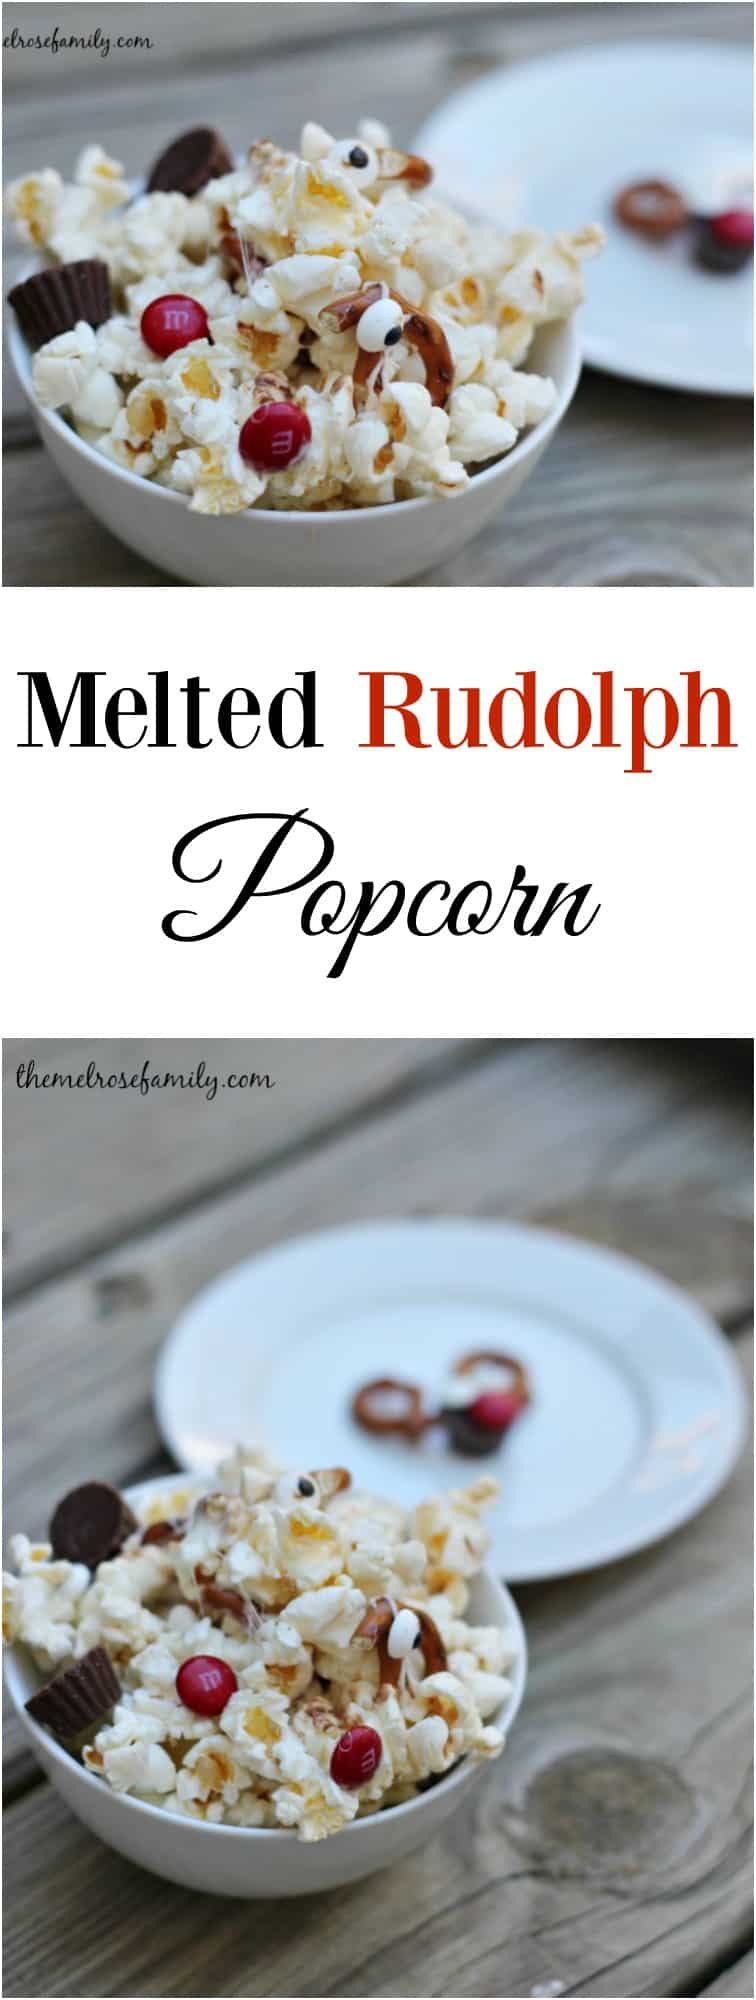 Who is your favorite Christmas character? We love Rudolph so this Melted Rudolph Popcorn is always a huge hit each year when we watch our Christmas movies.